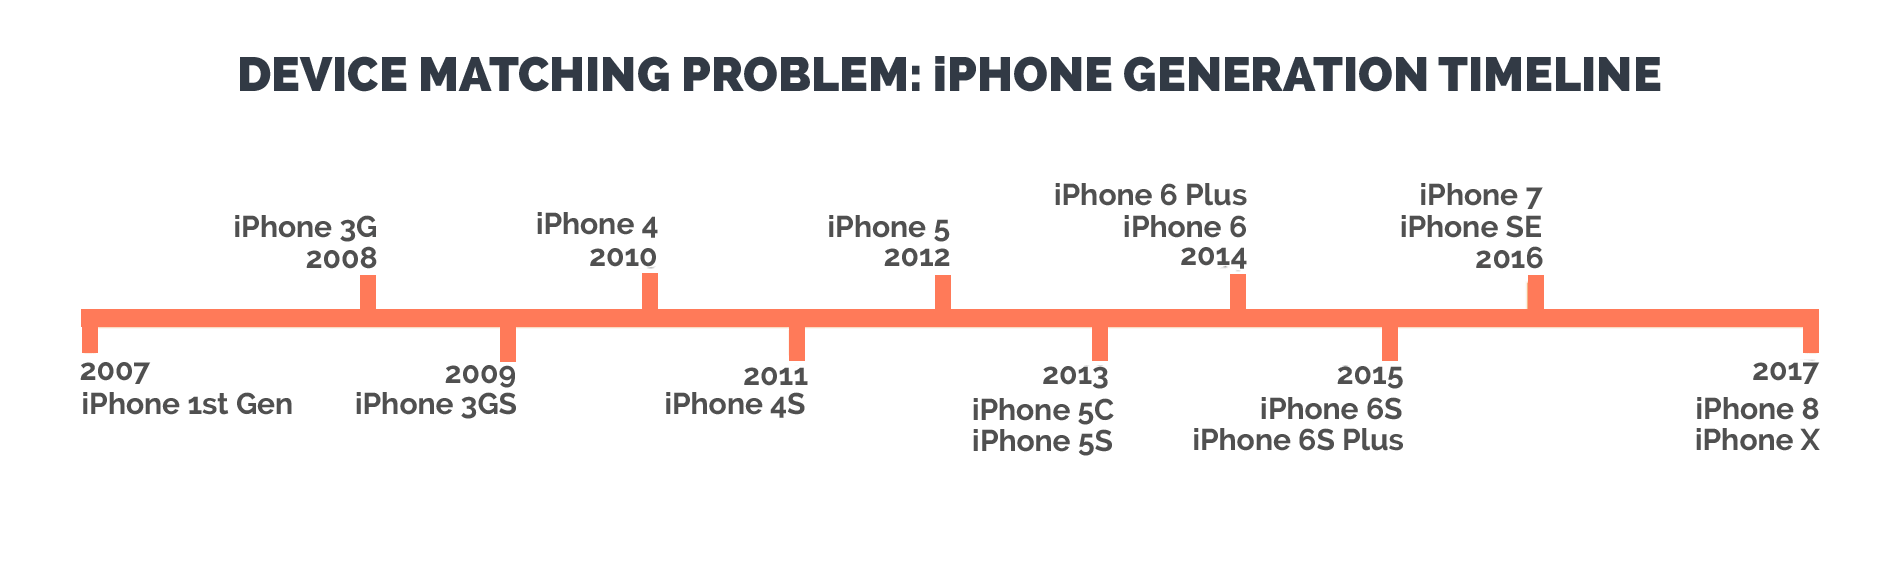 iphone generation timeline proves how difficult it is for wifi networks to keep up with technology